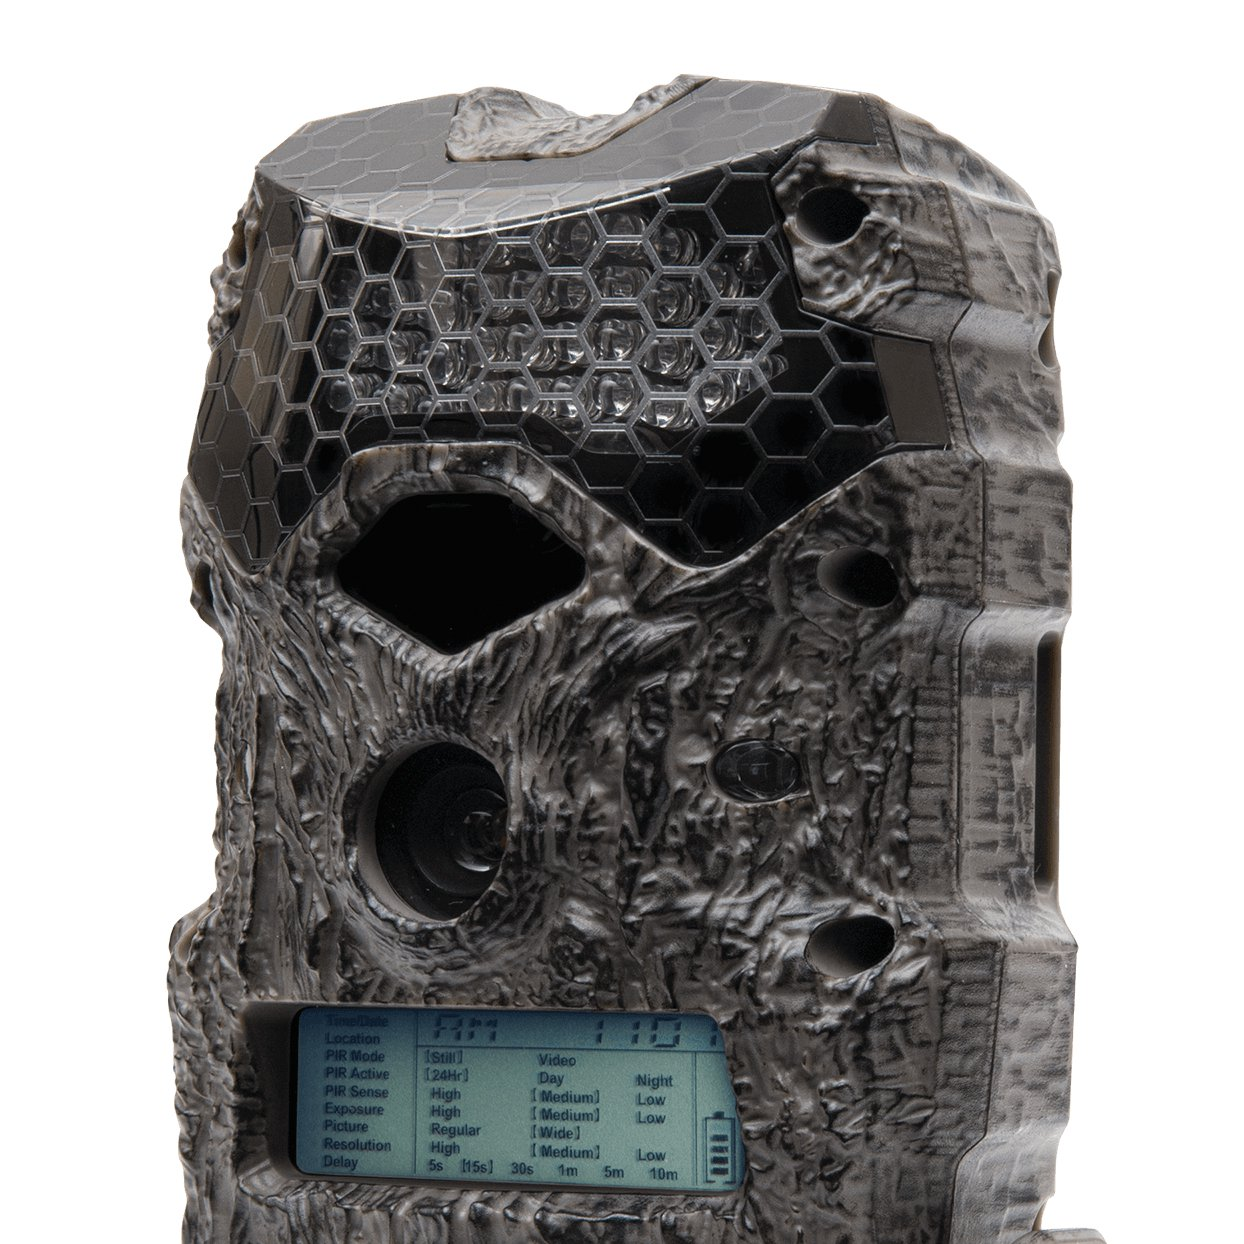 Wildgame Innovations Mirage 16 16MP 720p Video Hunting Game Trail Camera, Camo - image 3 of 5